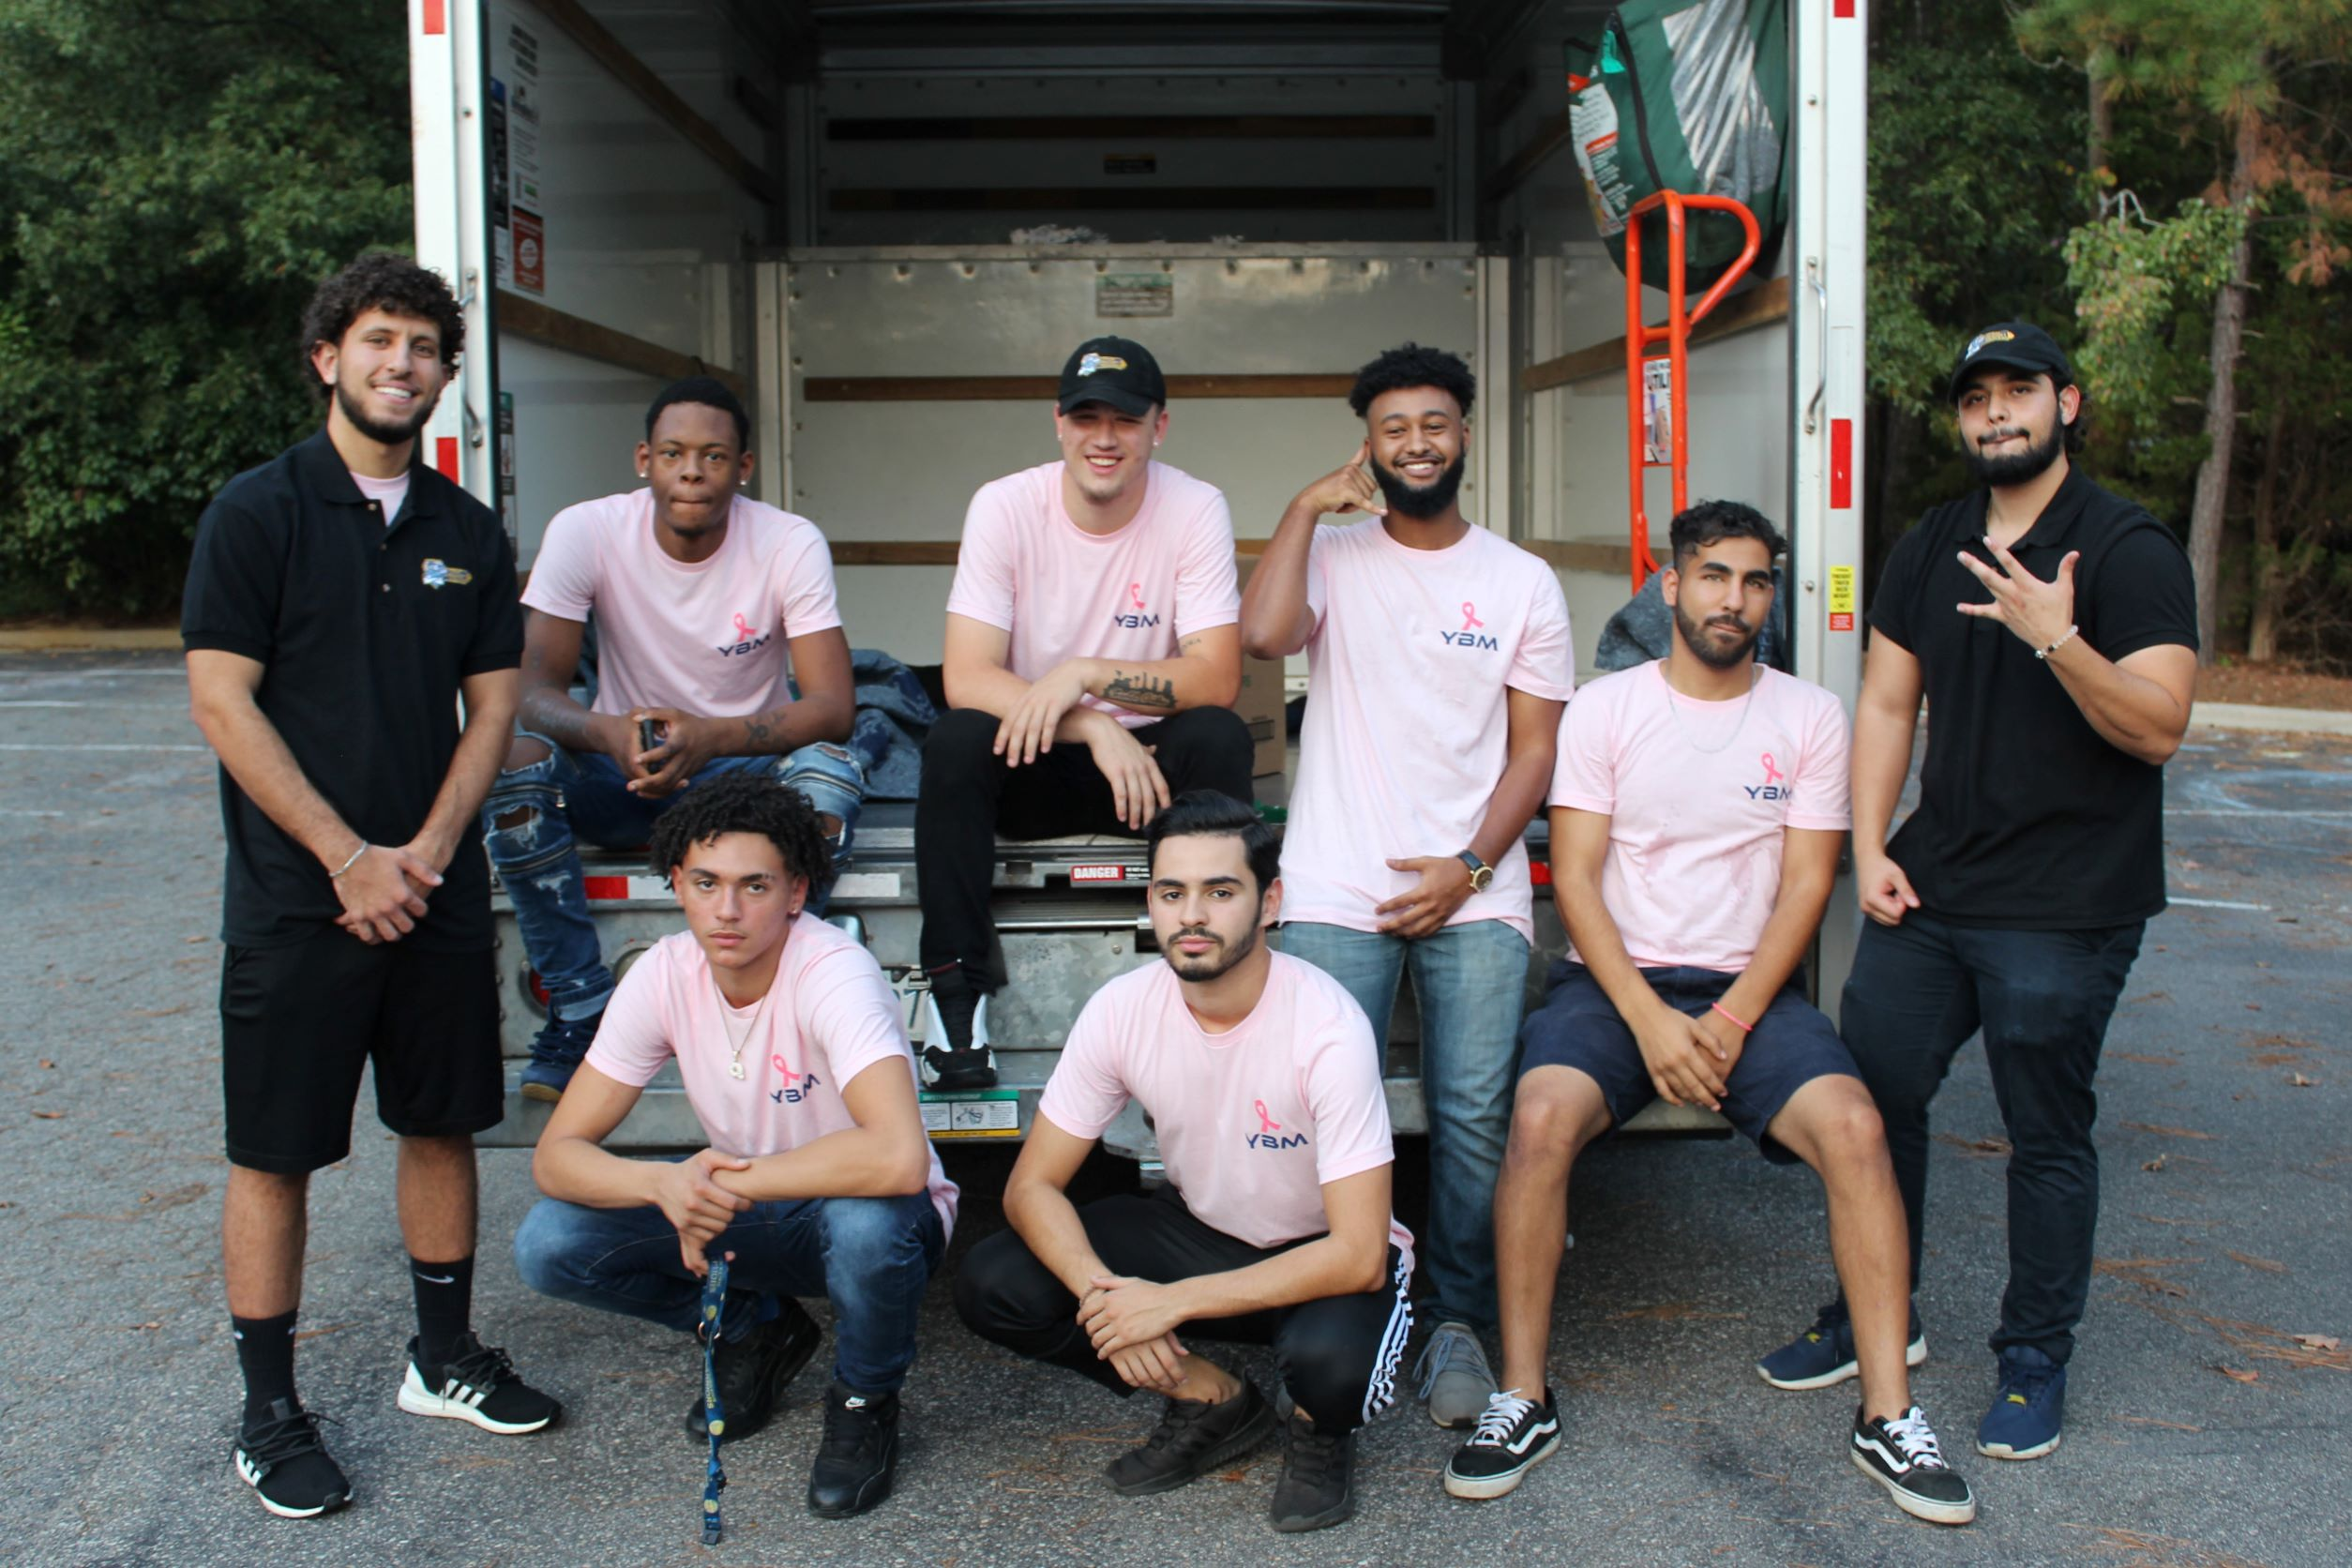 YBM crew members and leaders pose with the breact cancer awareness merch infront of a truck